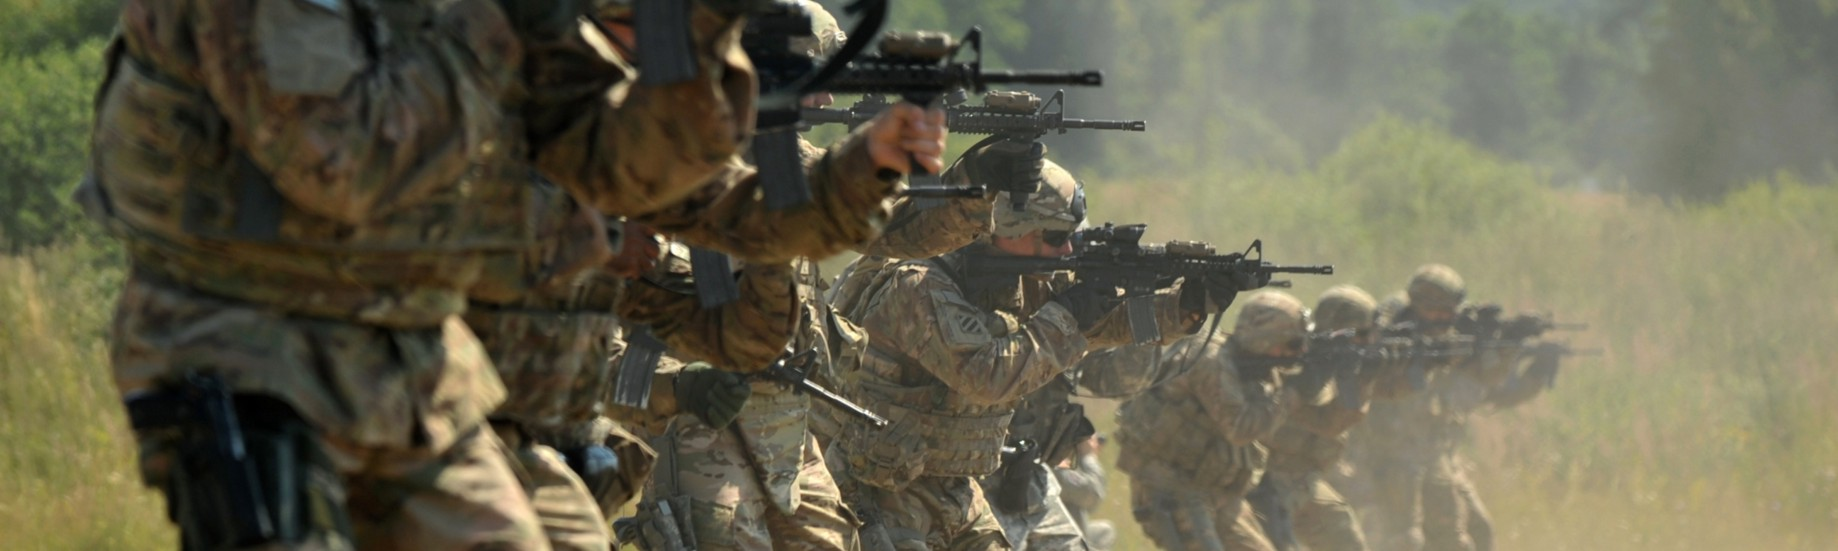 The M-4 Carbine Is Here to Stay - War Is Boring - Medium